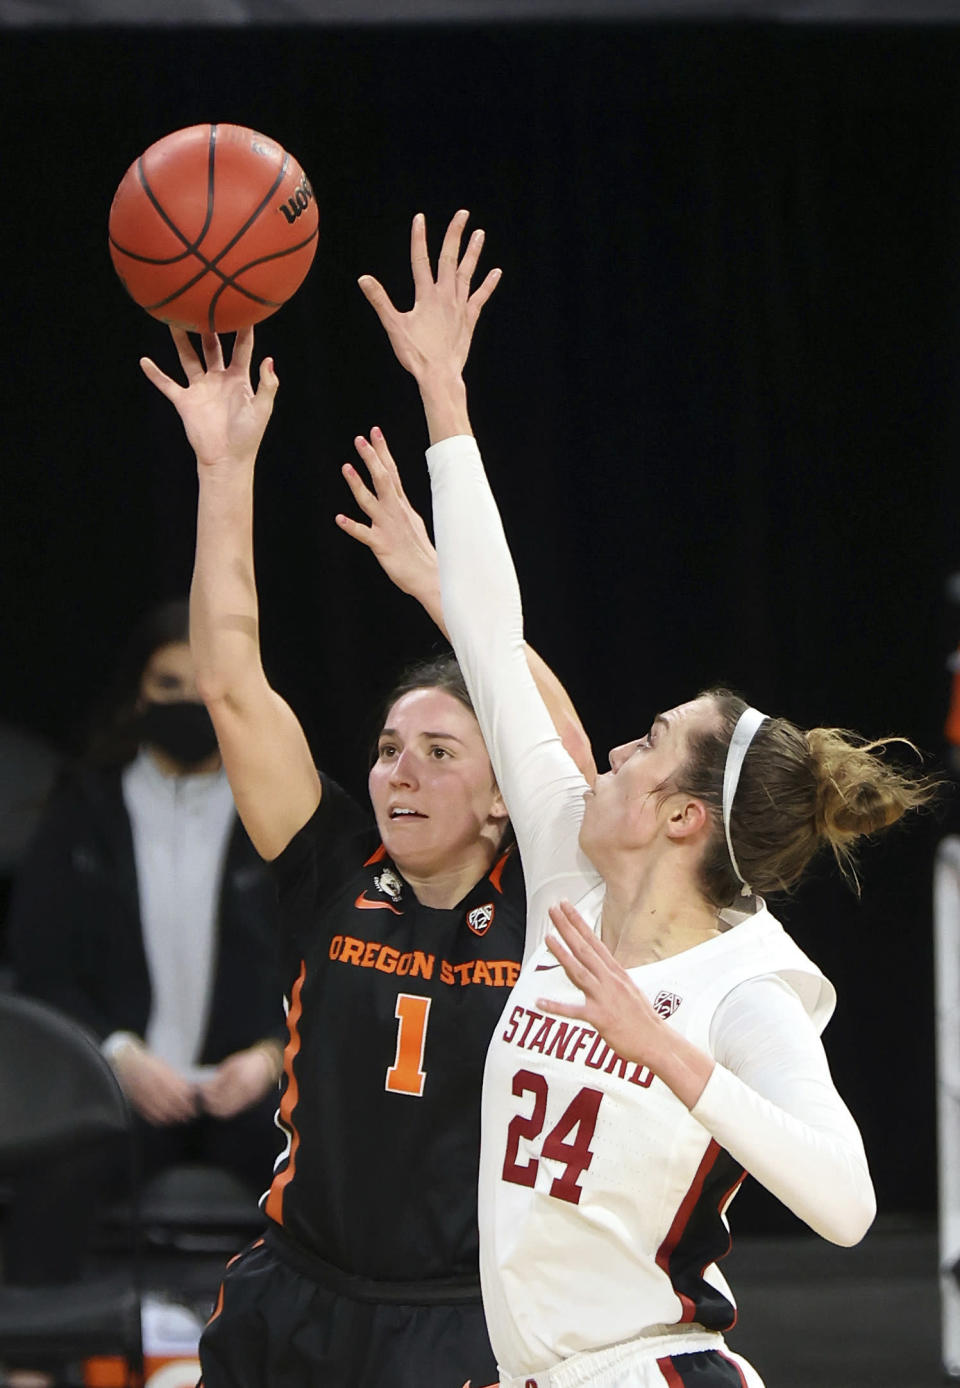 Oregon State guard Aleah Goodman (1) shoots as Stanford guard Lacie Hull (24) defends during the second half of an NCAA college basketball game in the semifinal round of the Pac-12 women's tournament Friday, March 5, 2021, in Las Vegas. (AP Photo/Isaac Brekken)